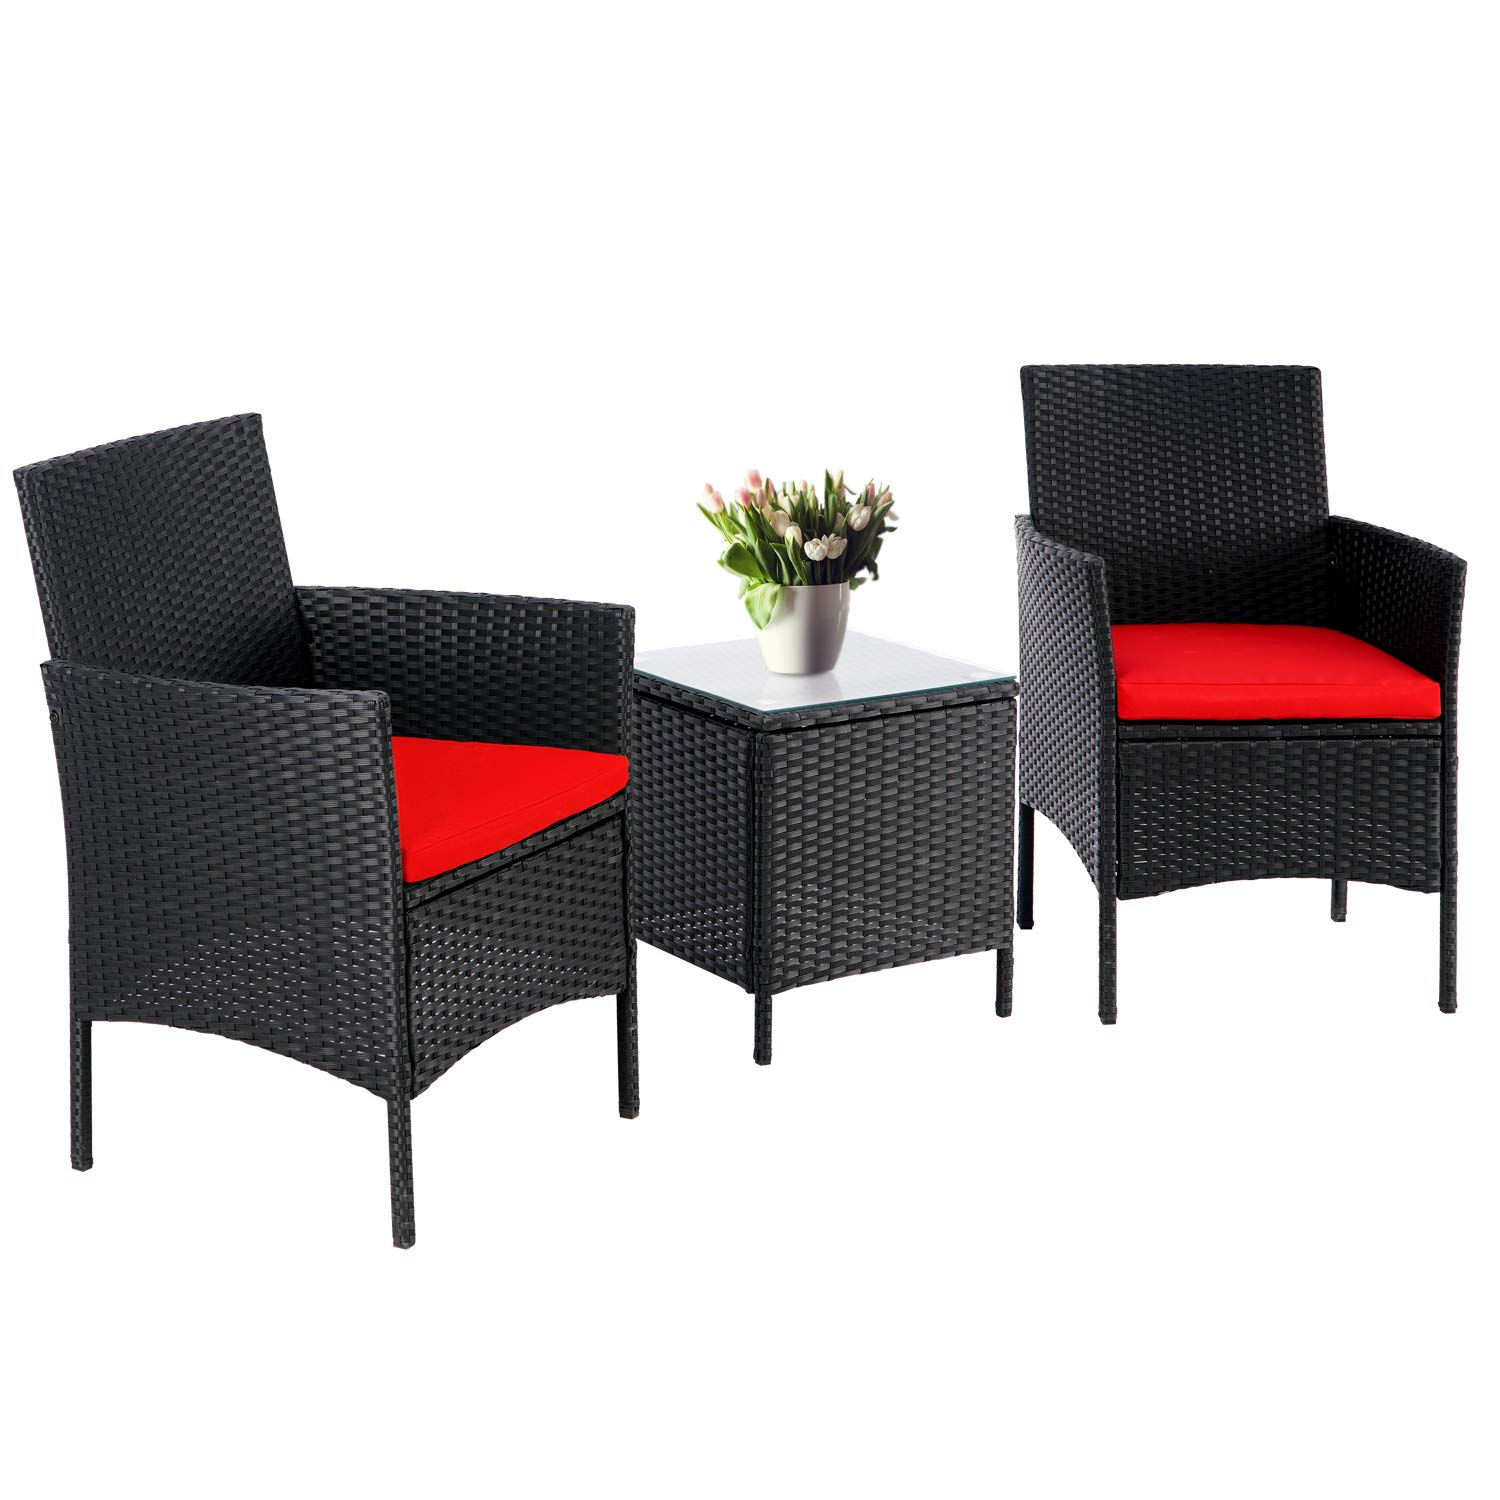 suncrown 3 piece patio outdoor bistro furniture set all weather black wicker chairs and glass side table red cushion